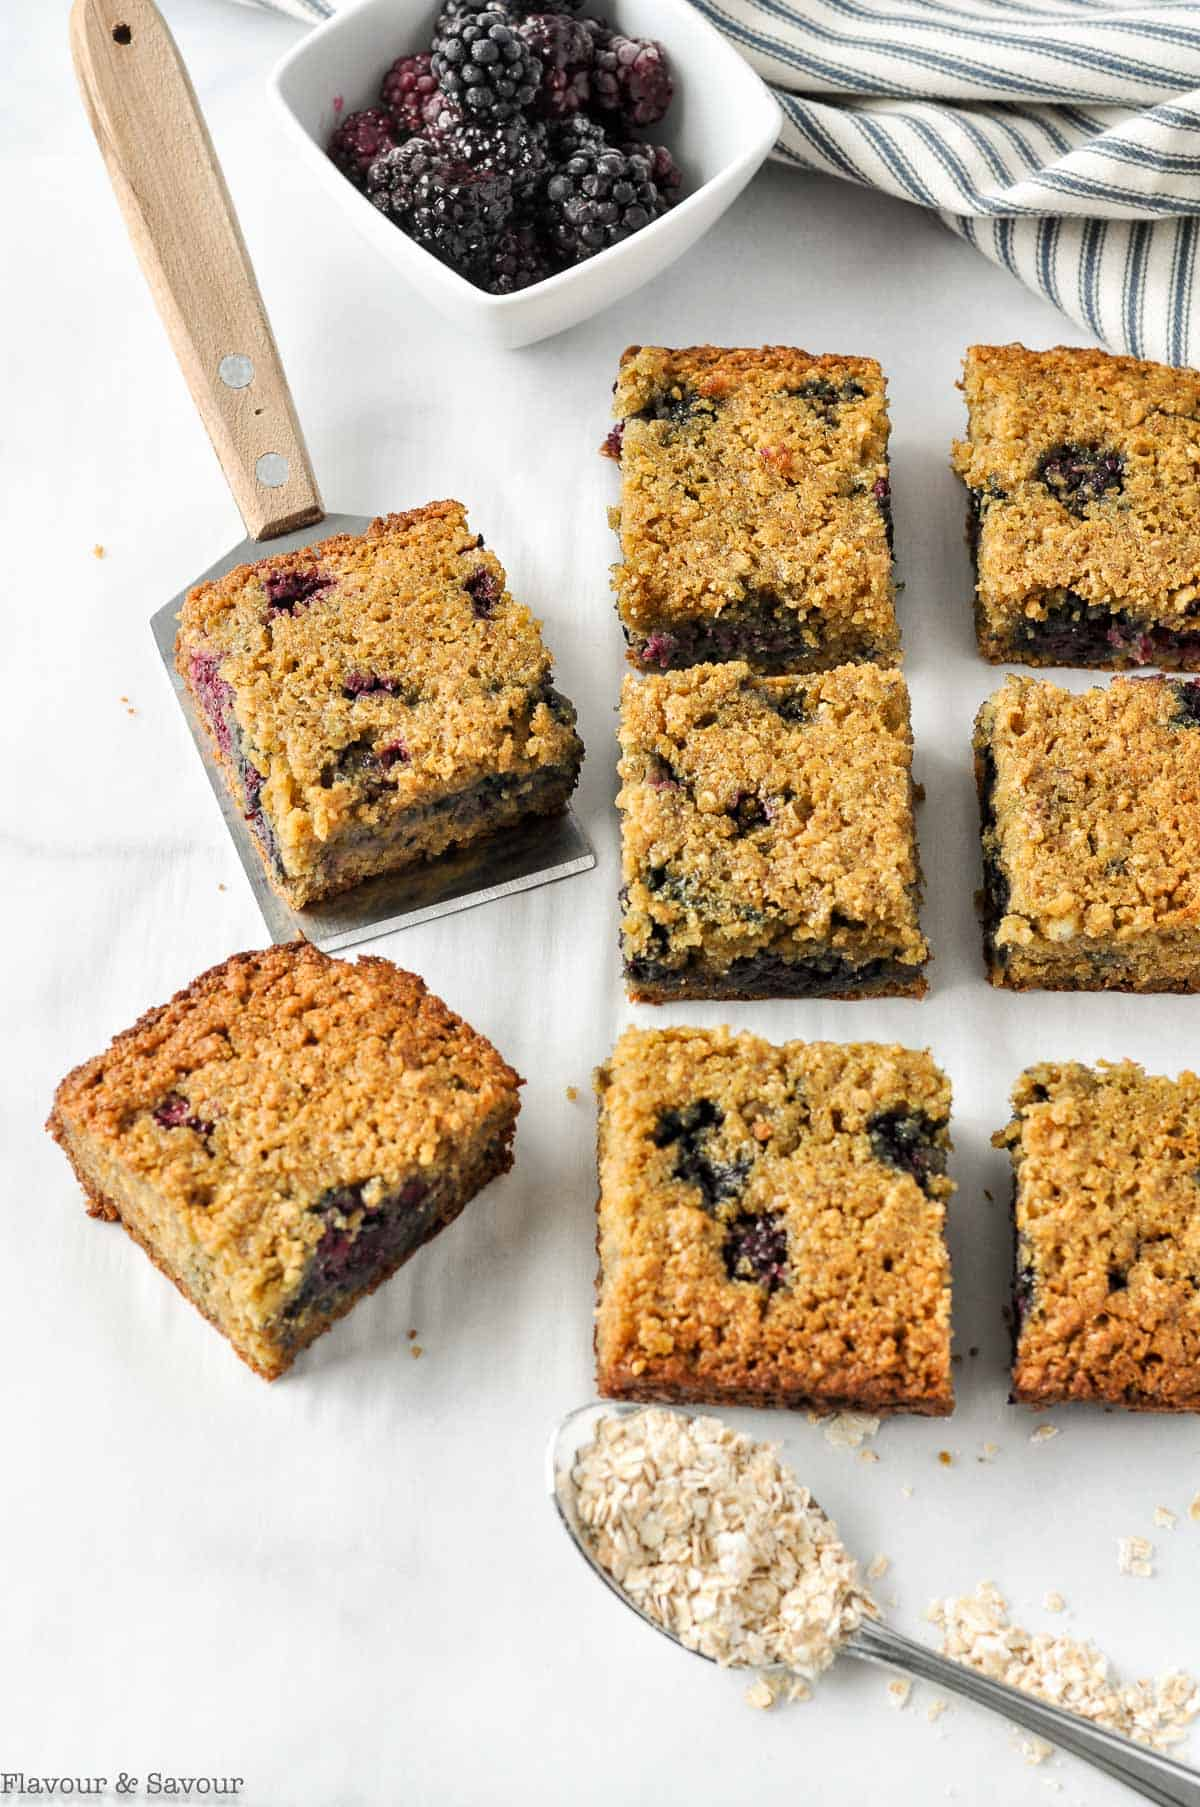 Overhead view of blackberry bars cut into squares.